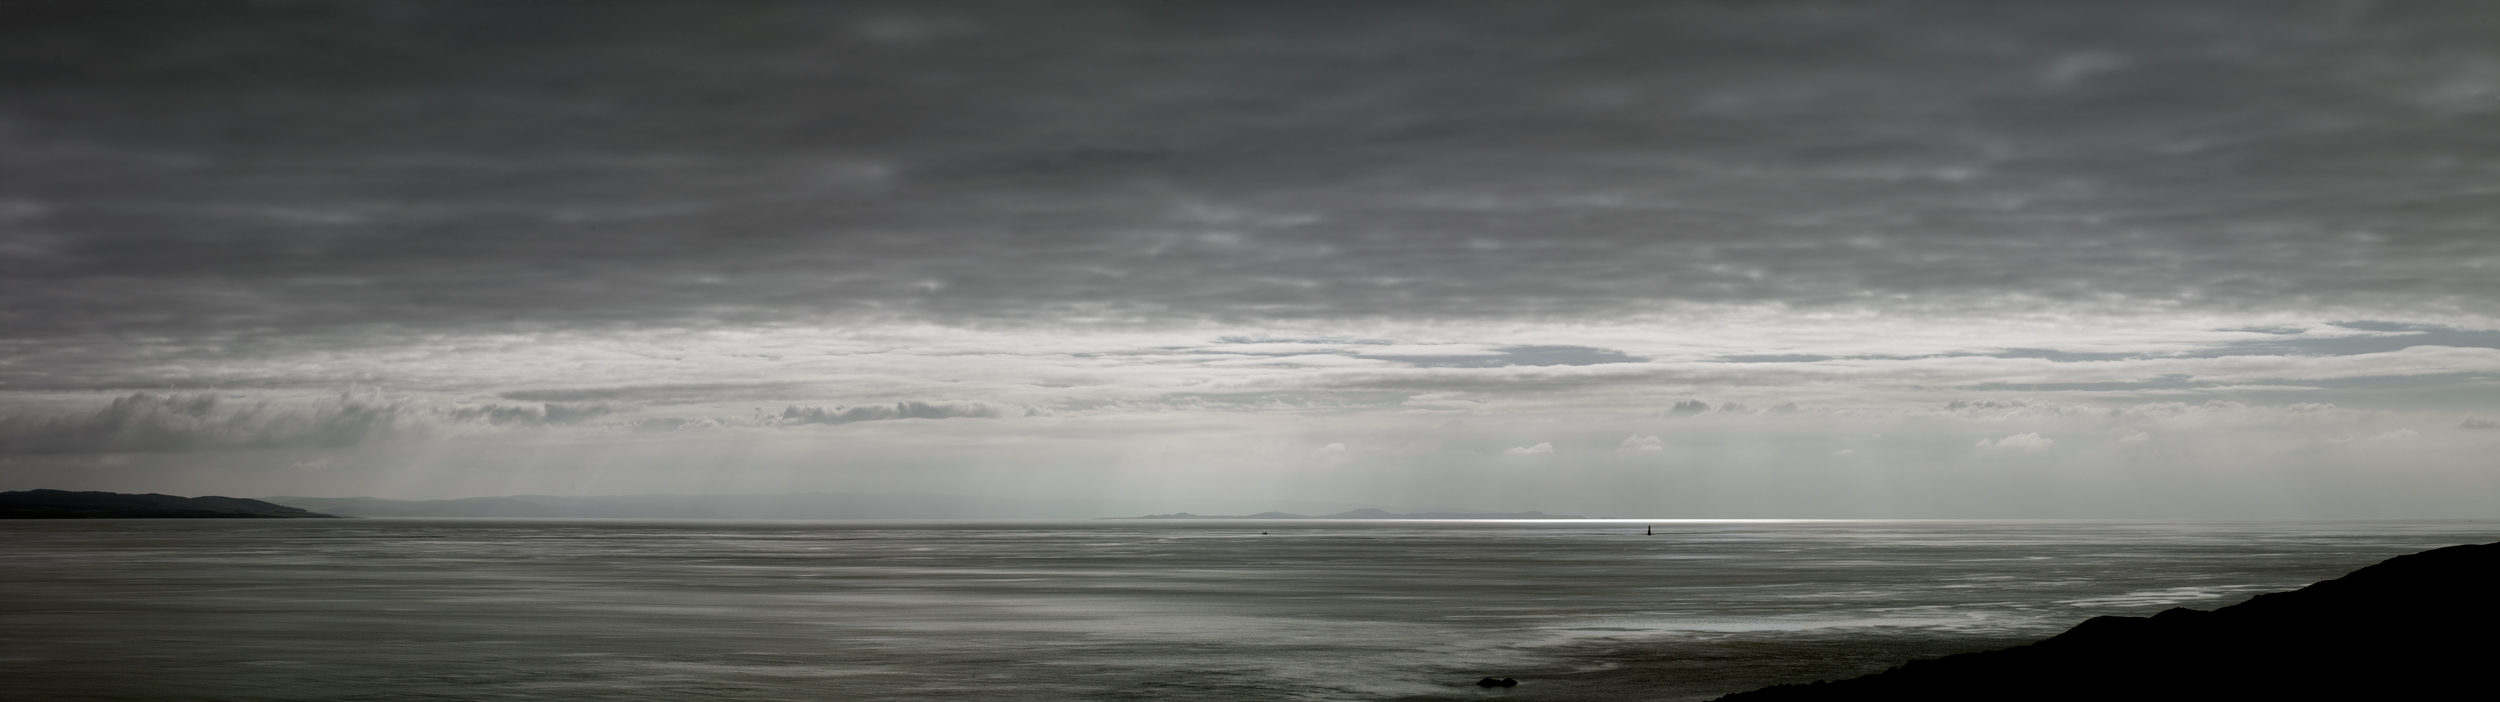 Jon Wyatt Photography - Sound of Jura VIII - seascape of the Sound of Jura looking towards the Scottish mainland